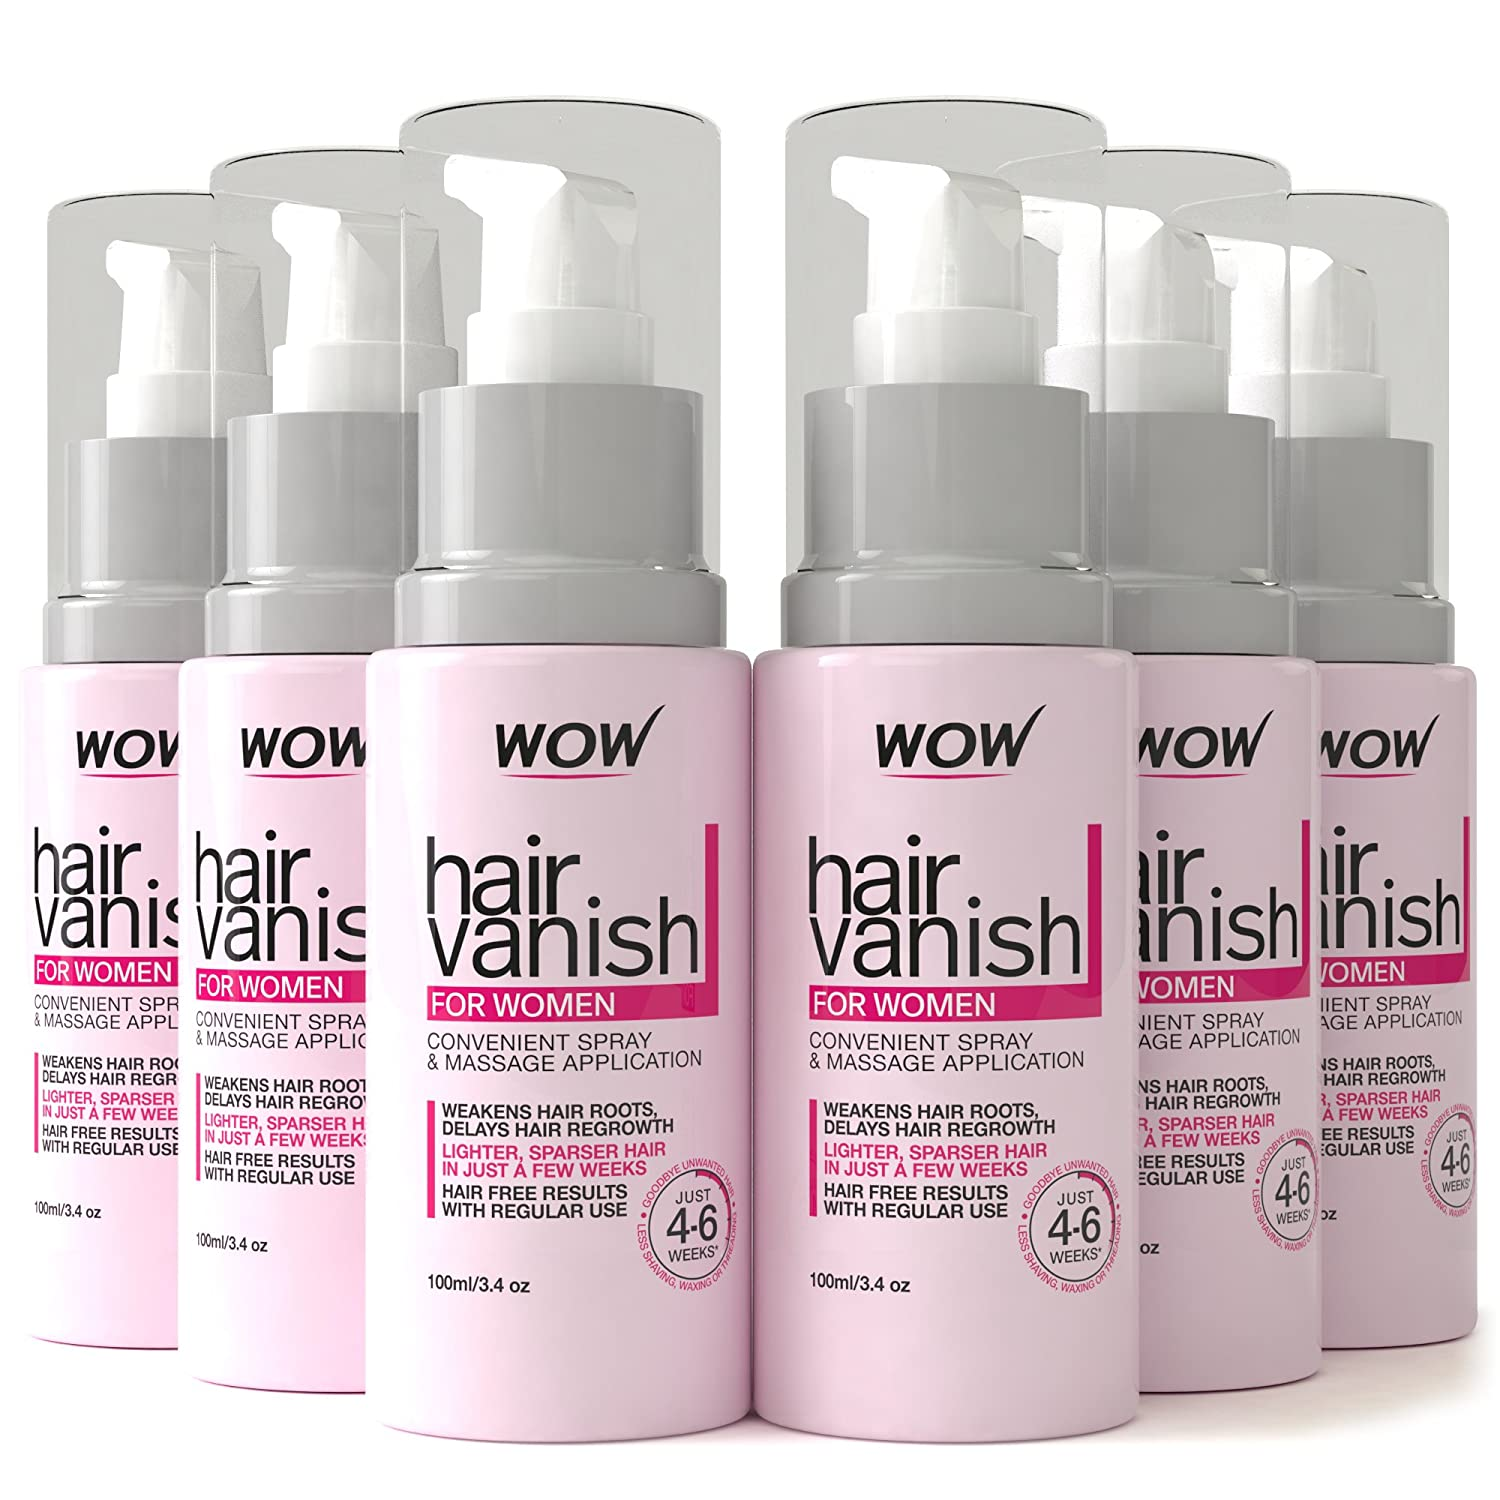 New WOW Hair Vanish for Women - Natural Hair Growth Inhibitor. Lotion & Moisturizer for raw skin, delays Hair Regrowth & Reduces Hair thickness, appearance - New Improved Formula - 3.4 fl oz (6PACK) KAPCO International Ltd